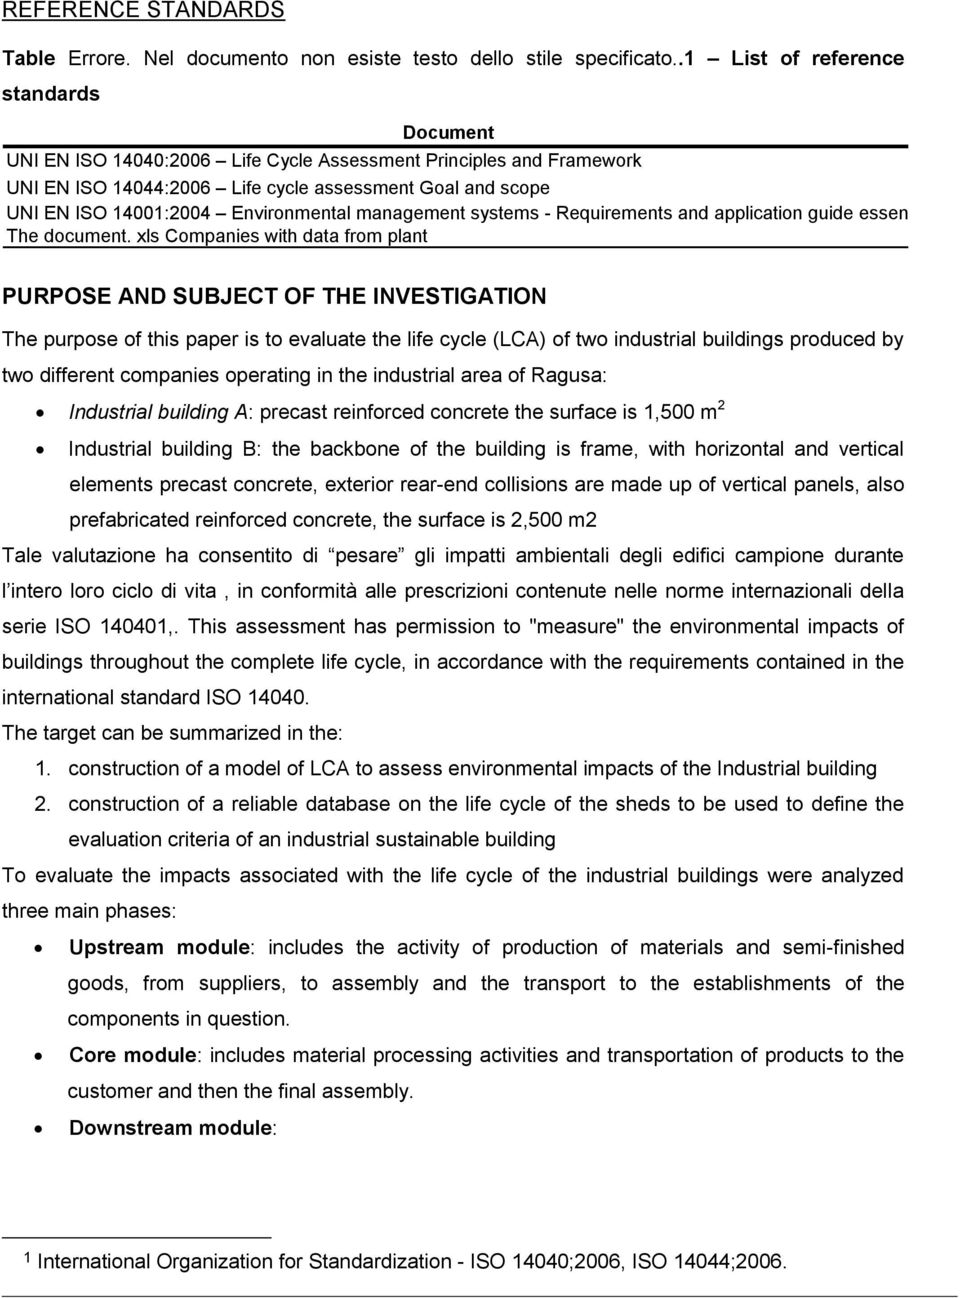 Environmental management systems - Requirements and application guide essential The document.